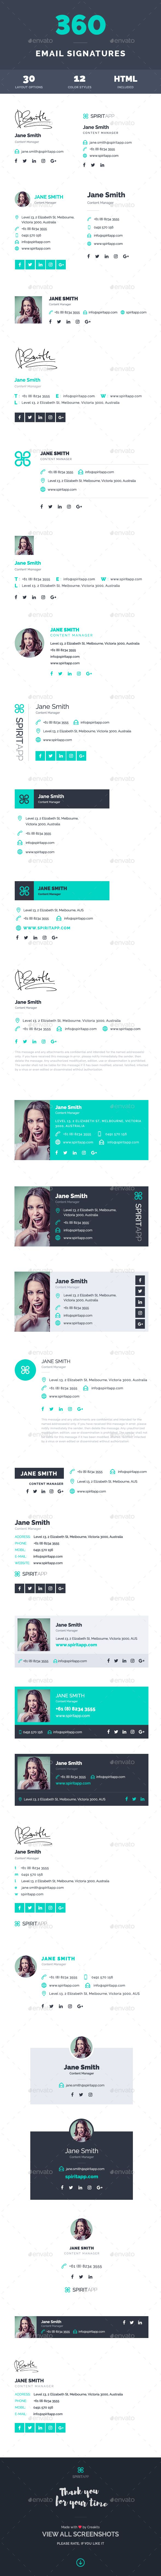 360 Professional E-Signature Templates